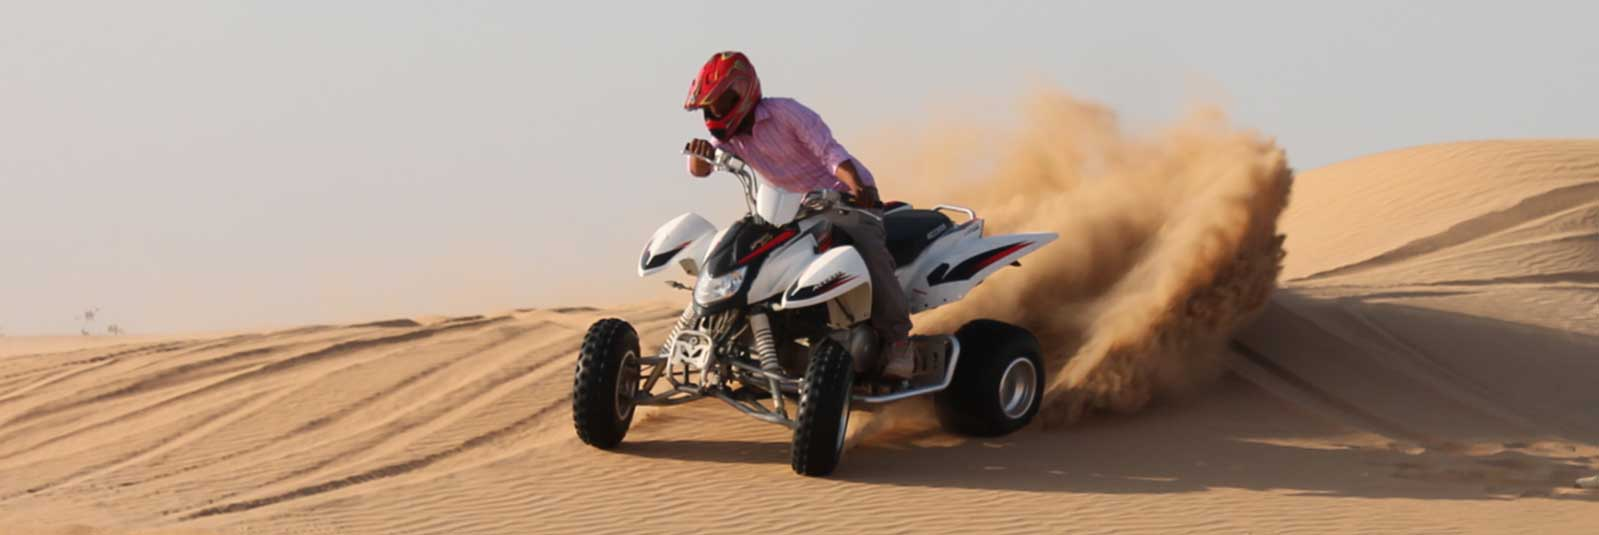 Quad-Bike-Ride-2.jpg